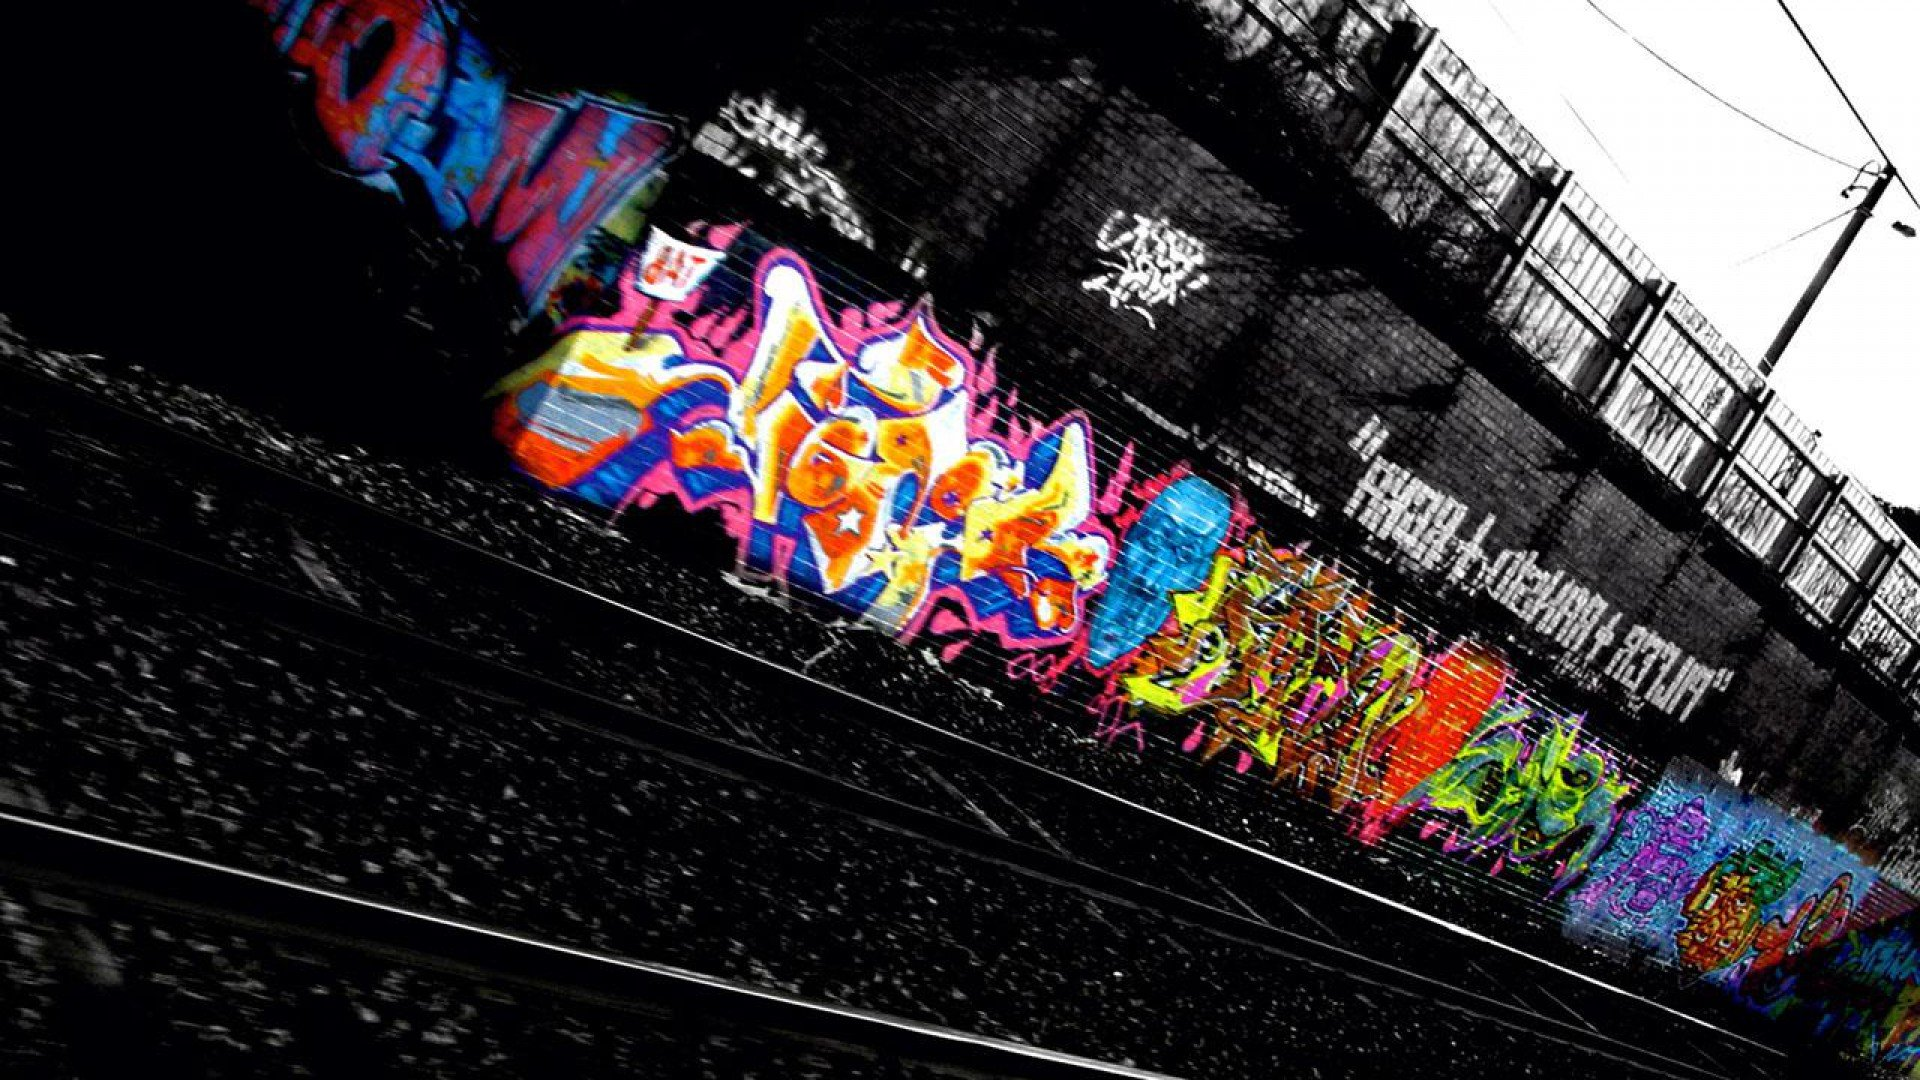 Comment to Download Graffiti Wallpaper Images For Laptop 1920x1080